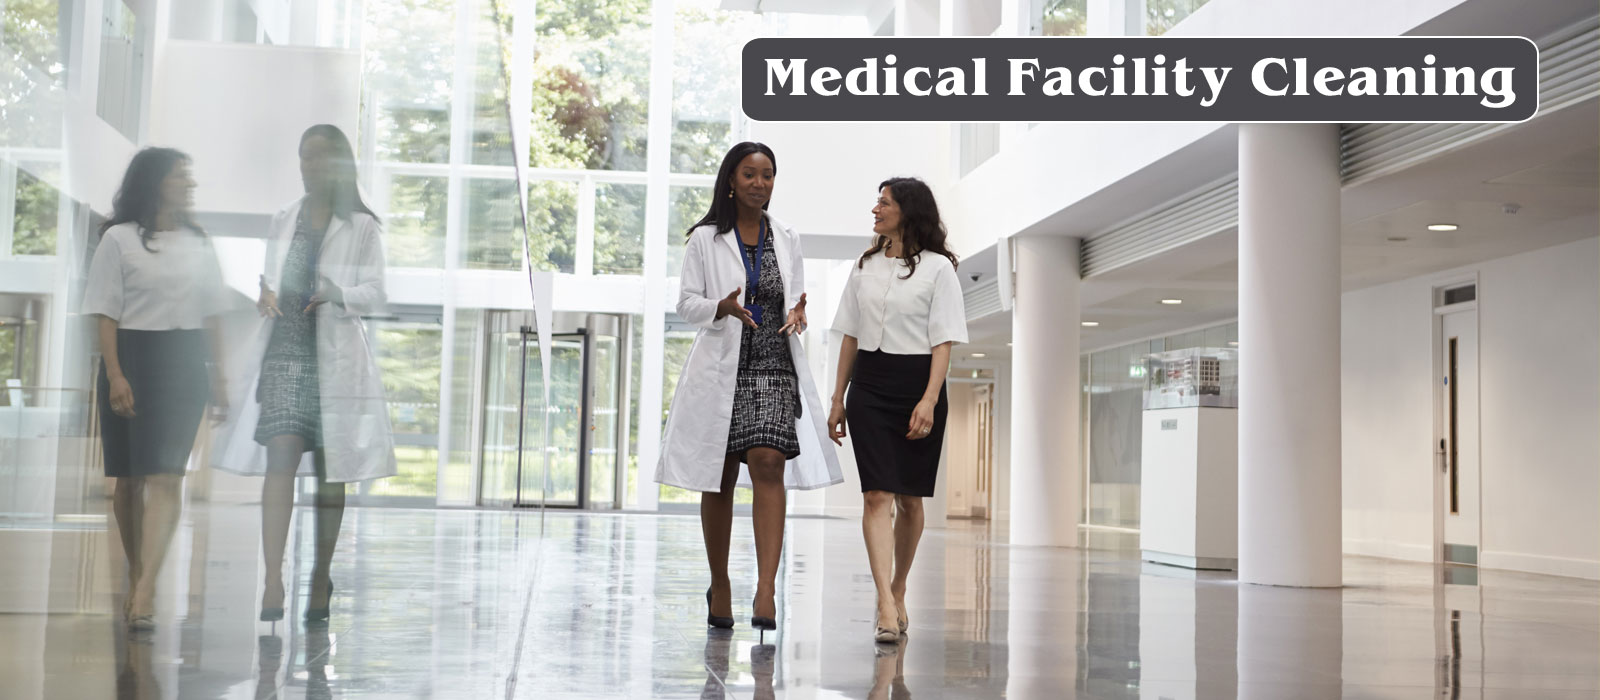 Professional Medical Facility Cleaning Service